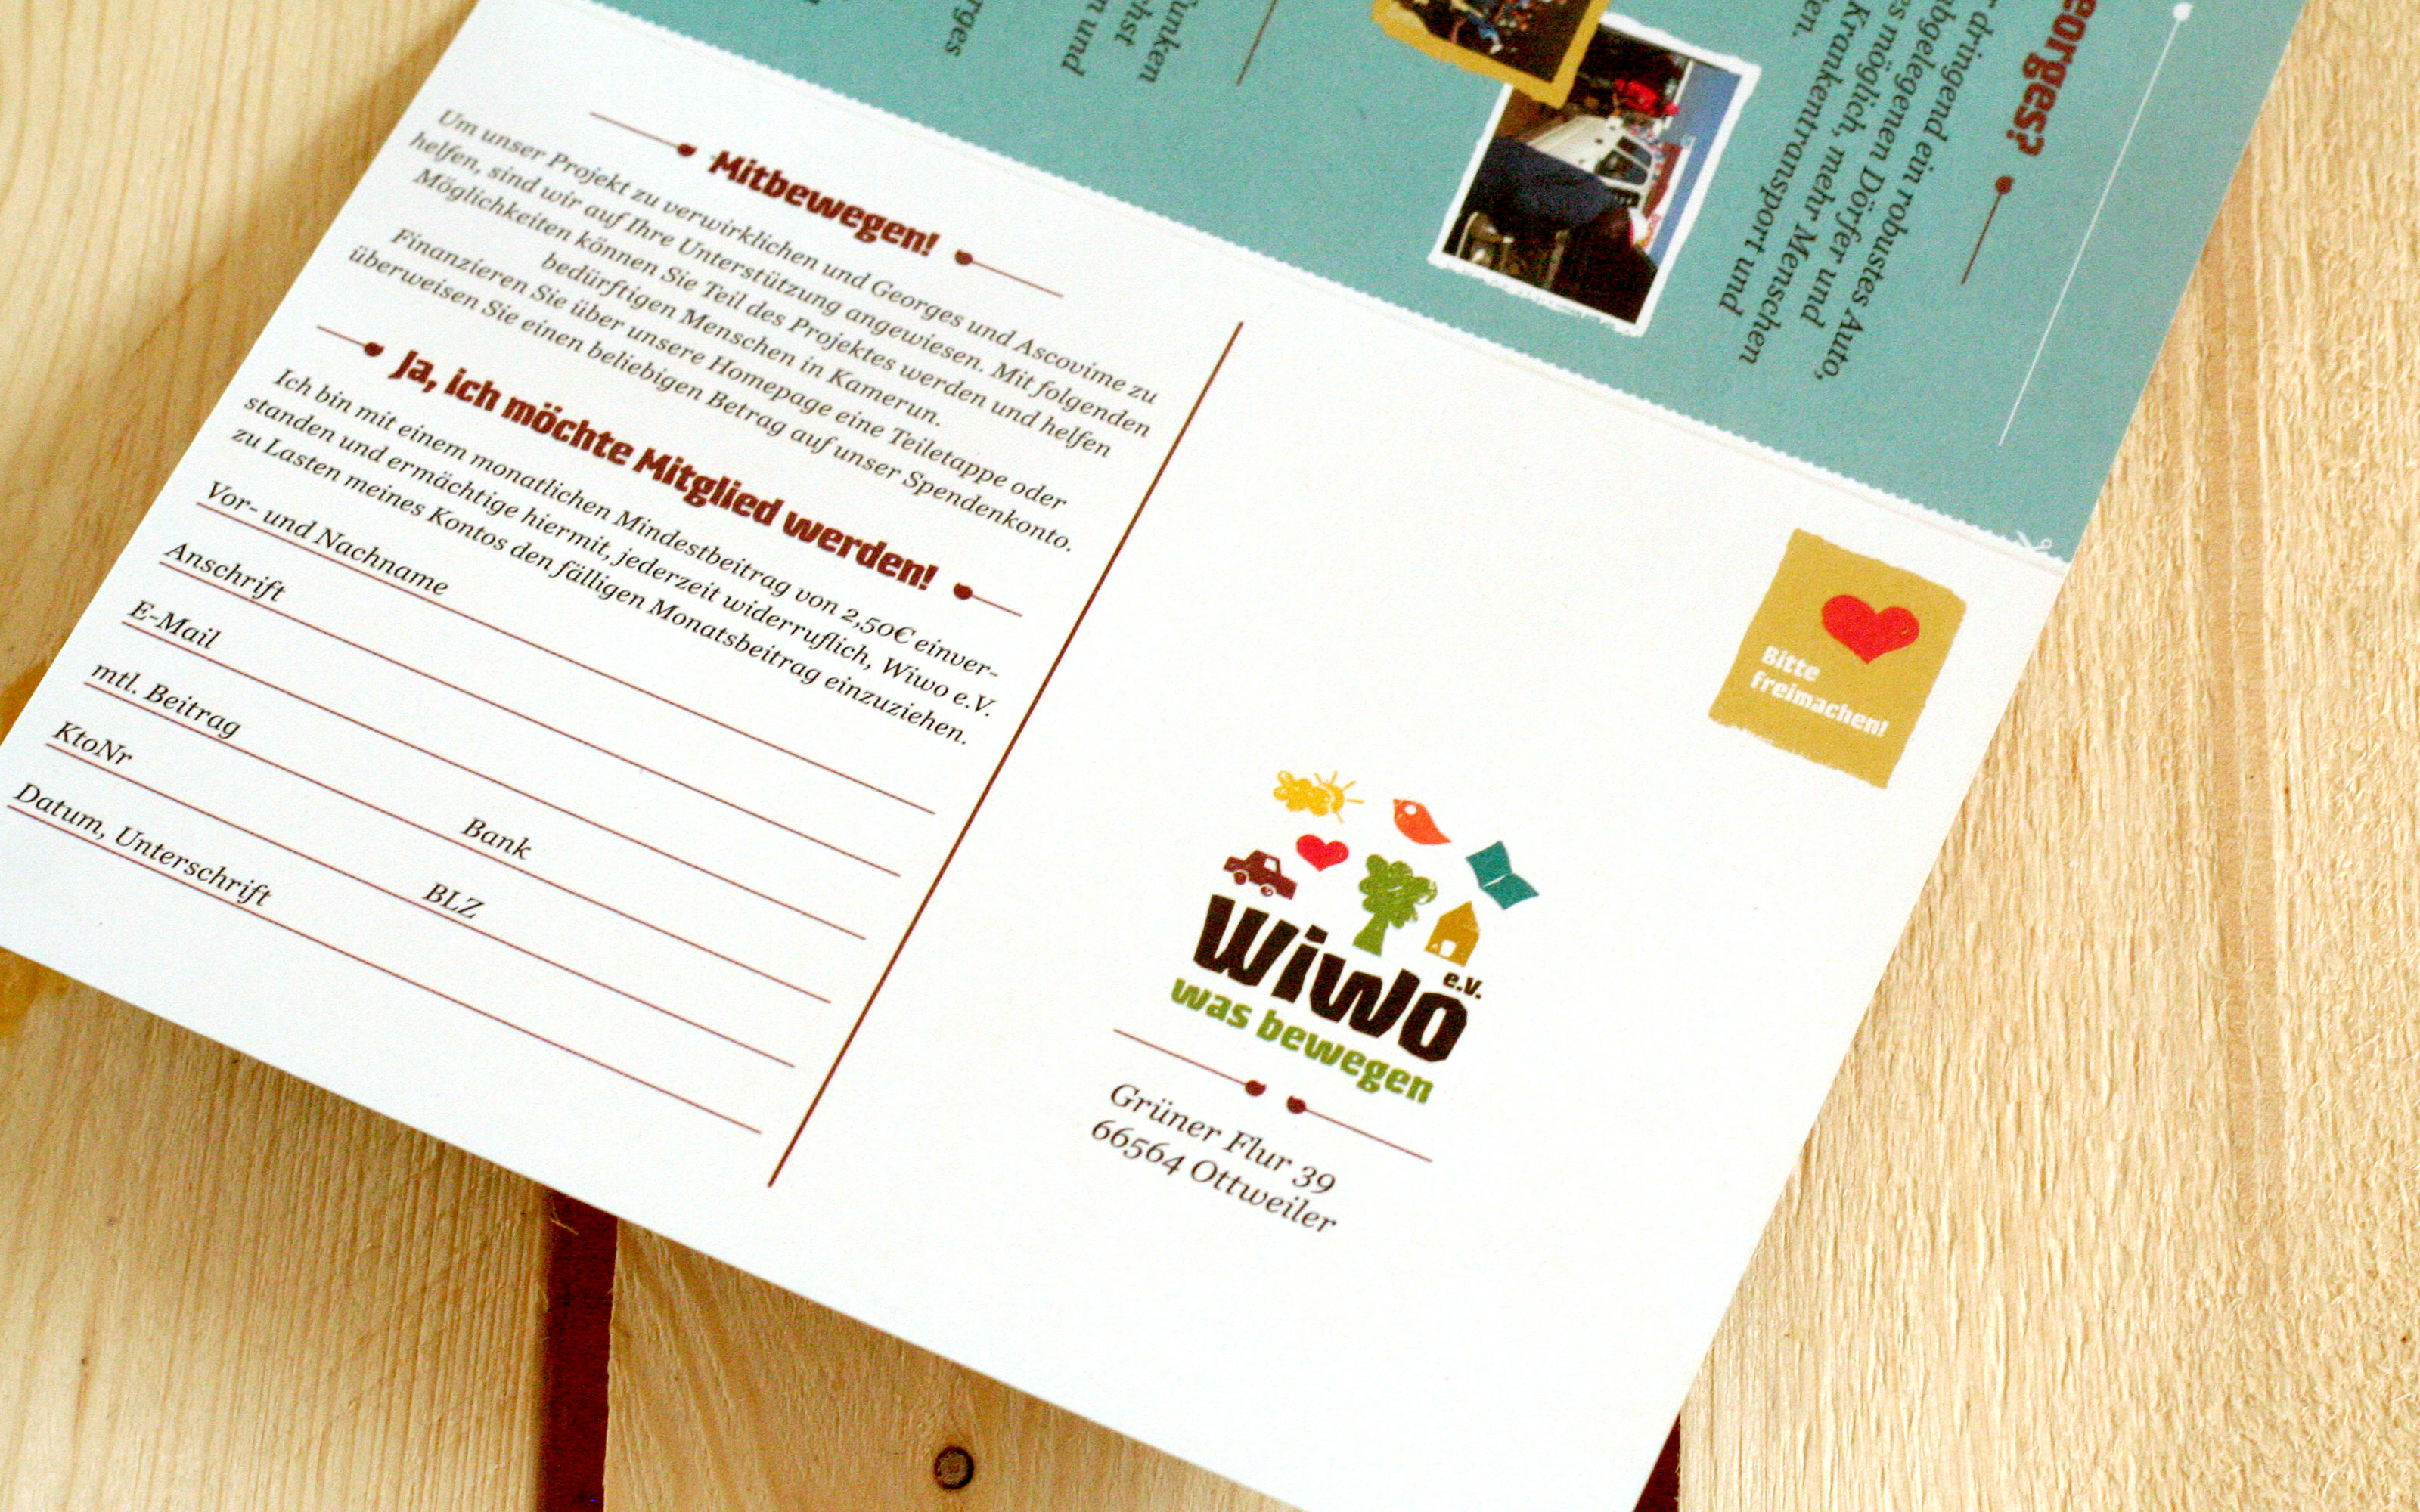 maniana-design wiwo aktionsflyer spende